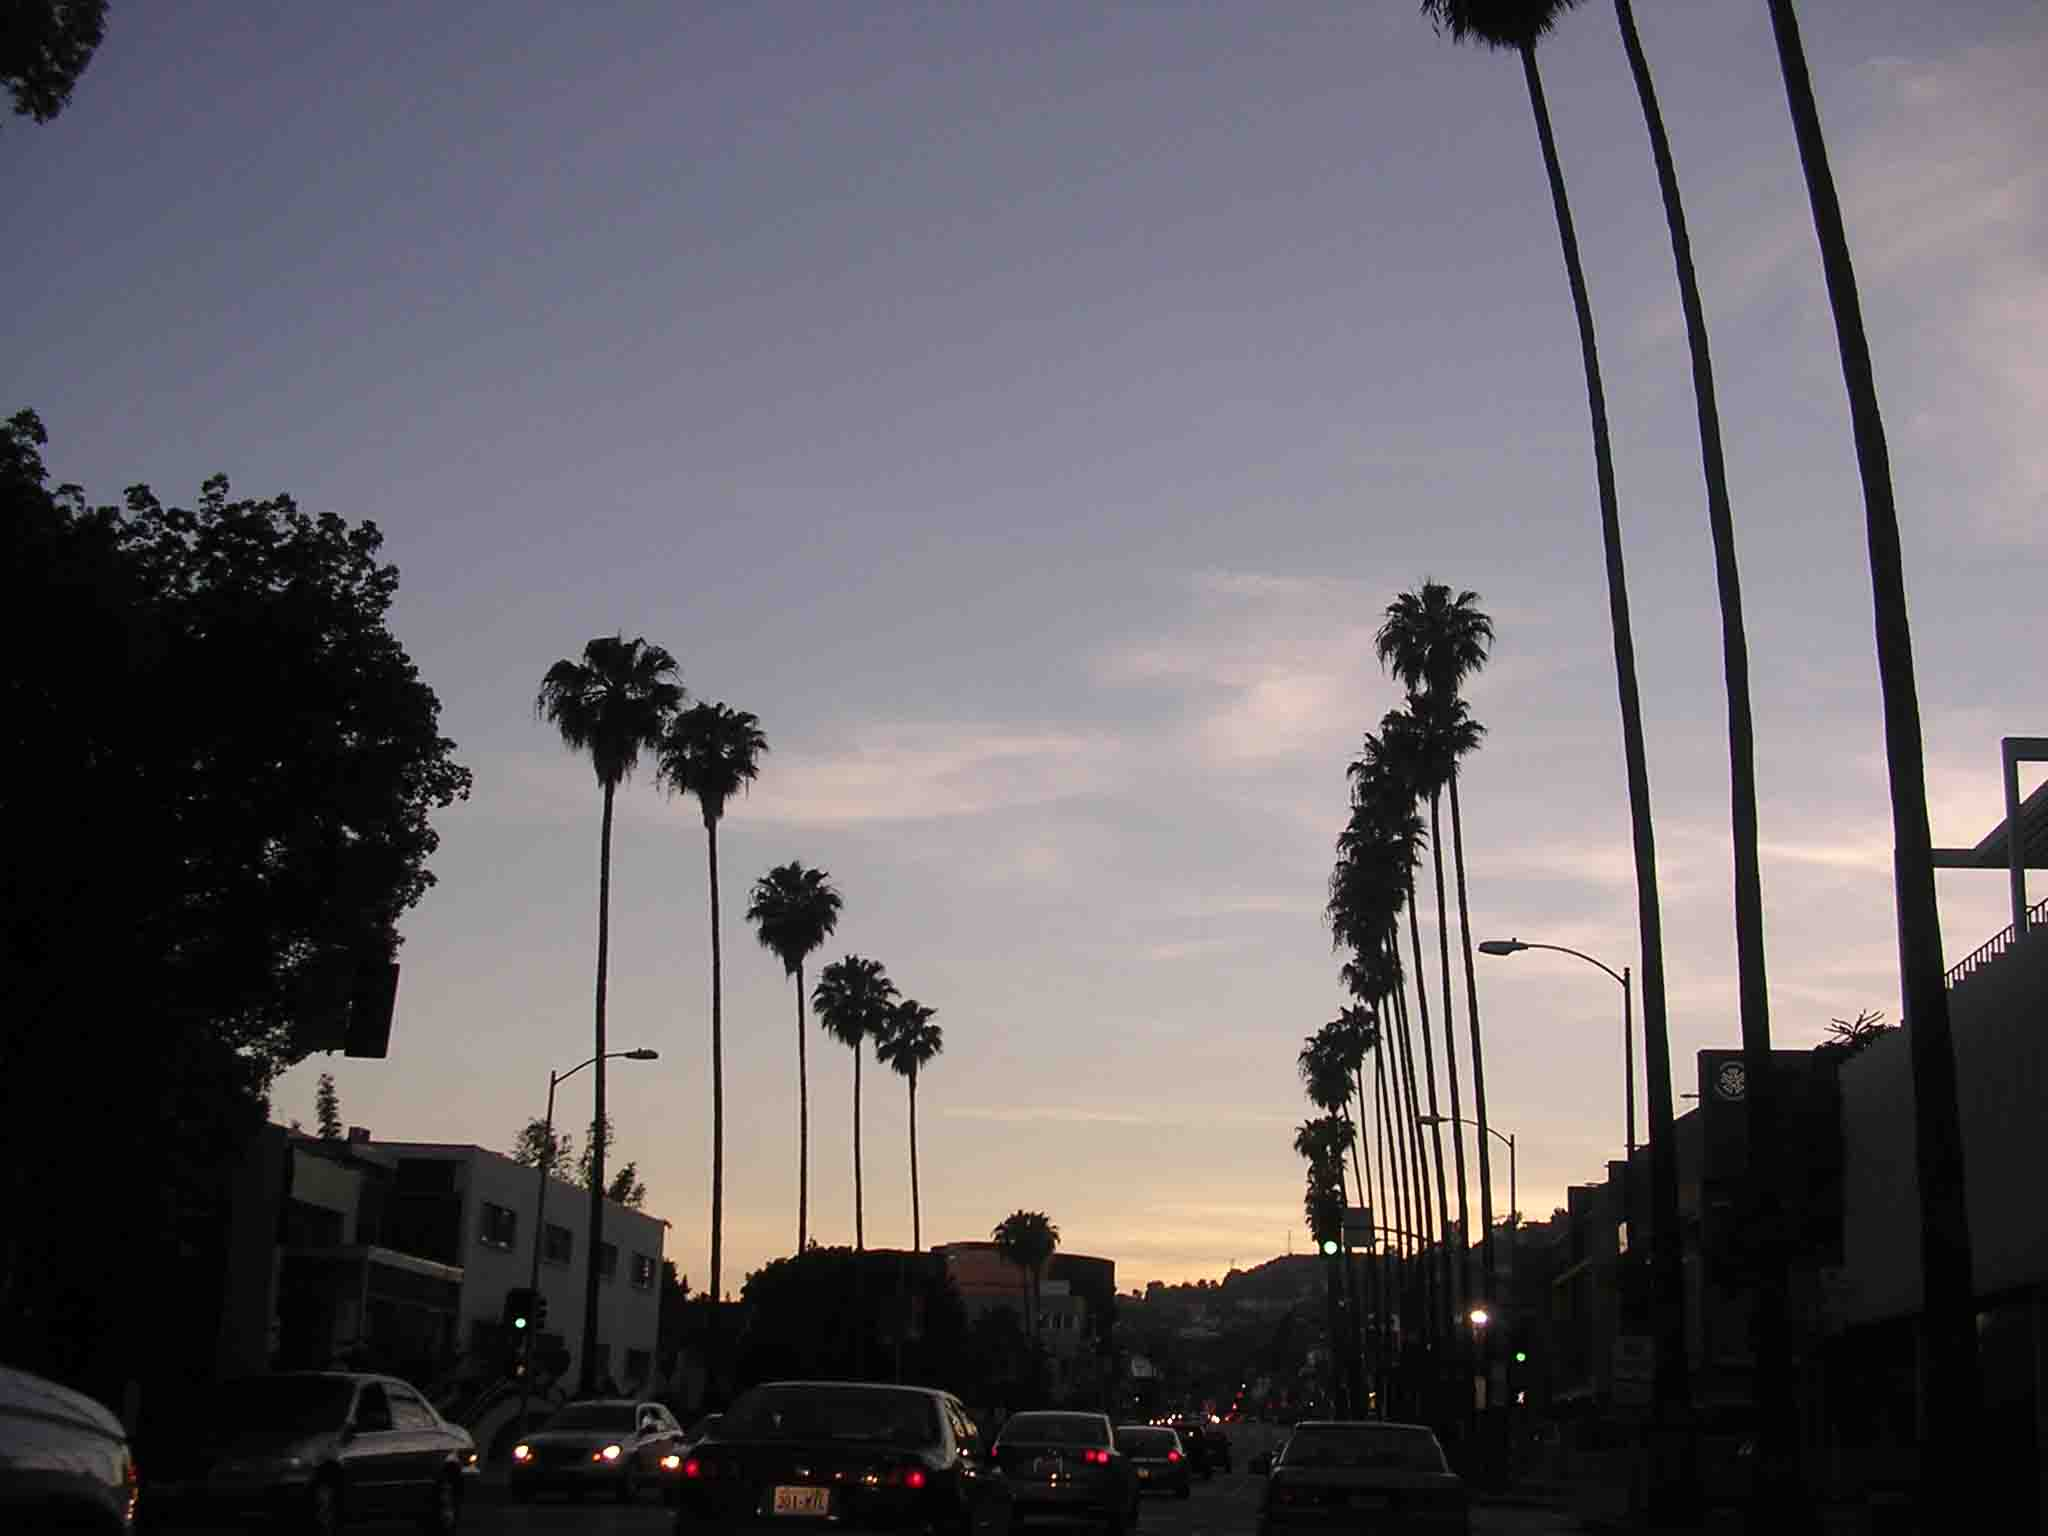 Sunset Blvd 18610 Hd Wallpapers In Movies Imagescicom 2048x1536